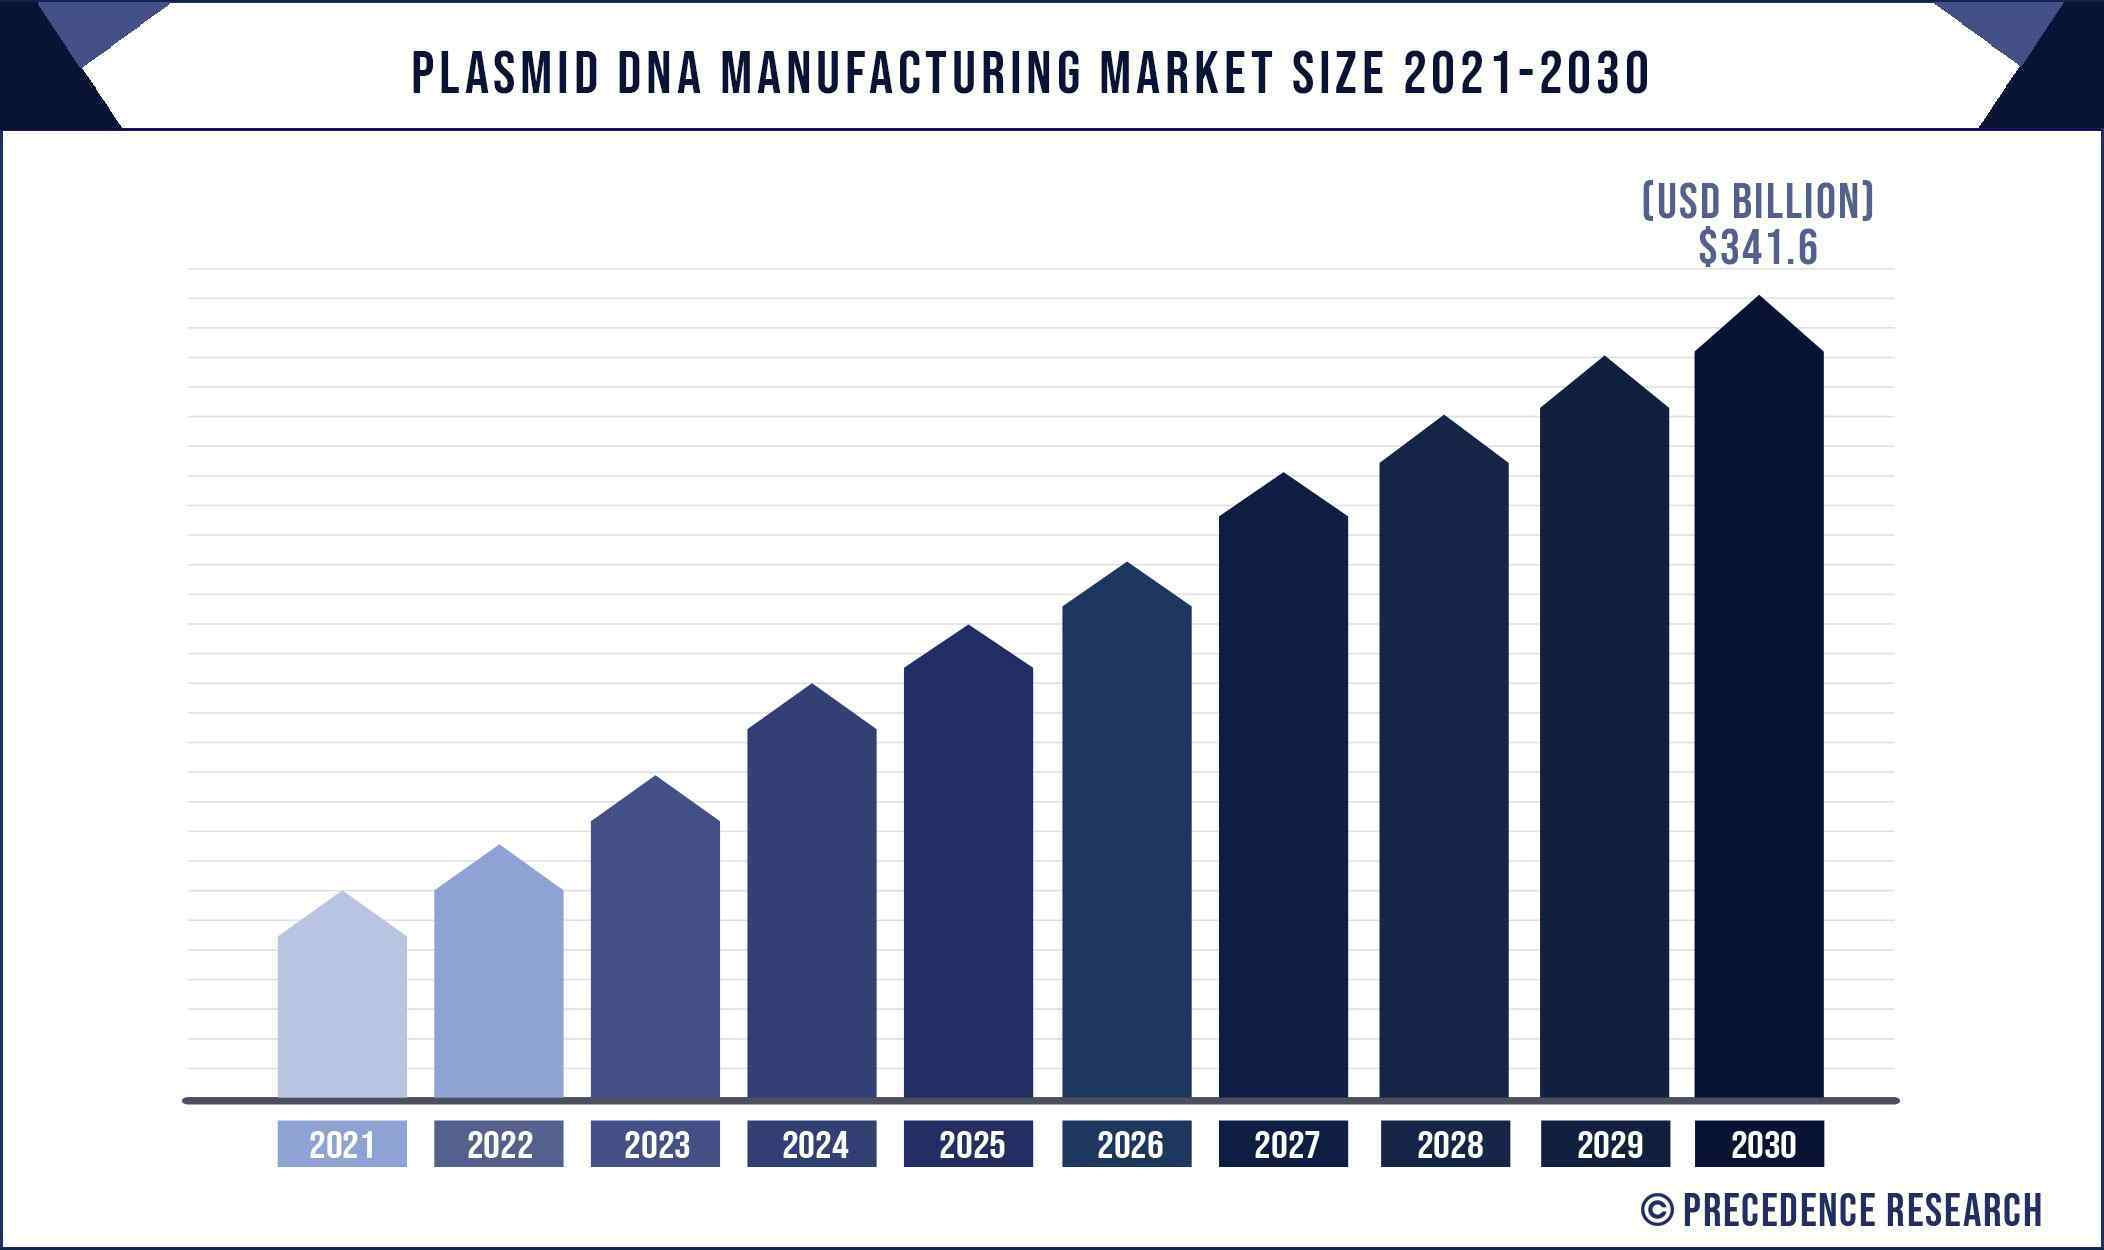 Plasmid DNA Manufacturing Market Size 2021 to 2030